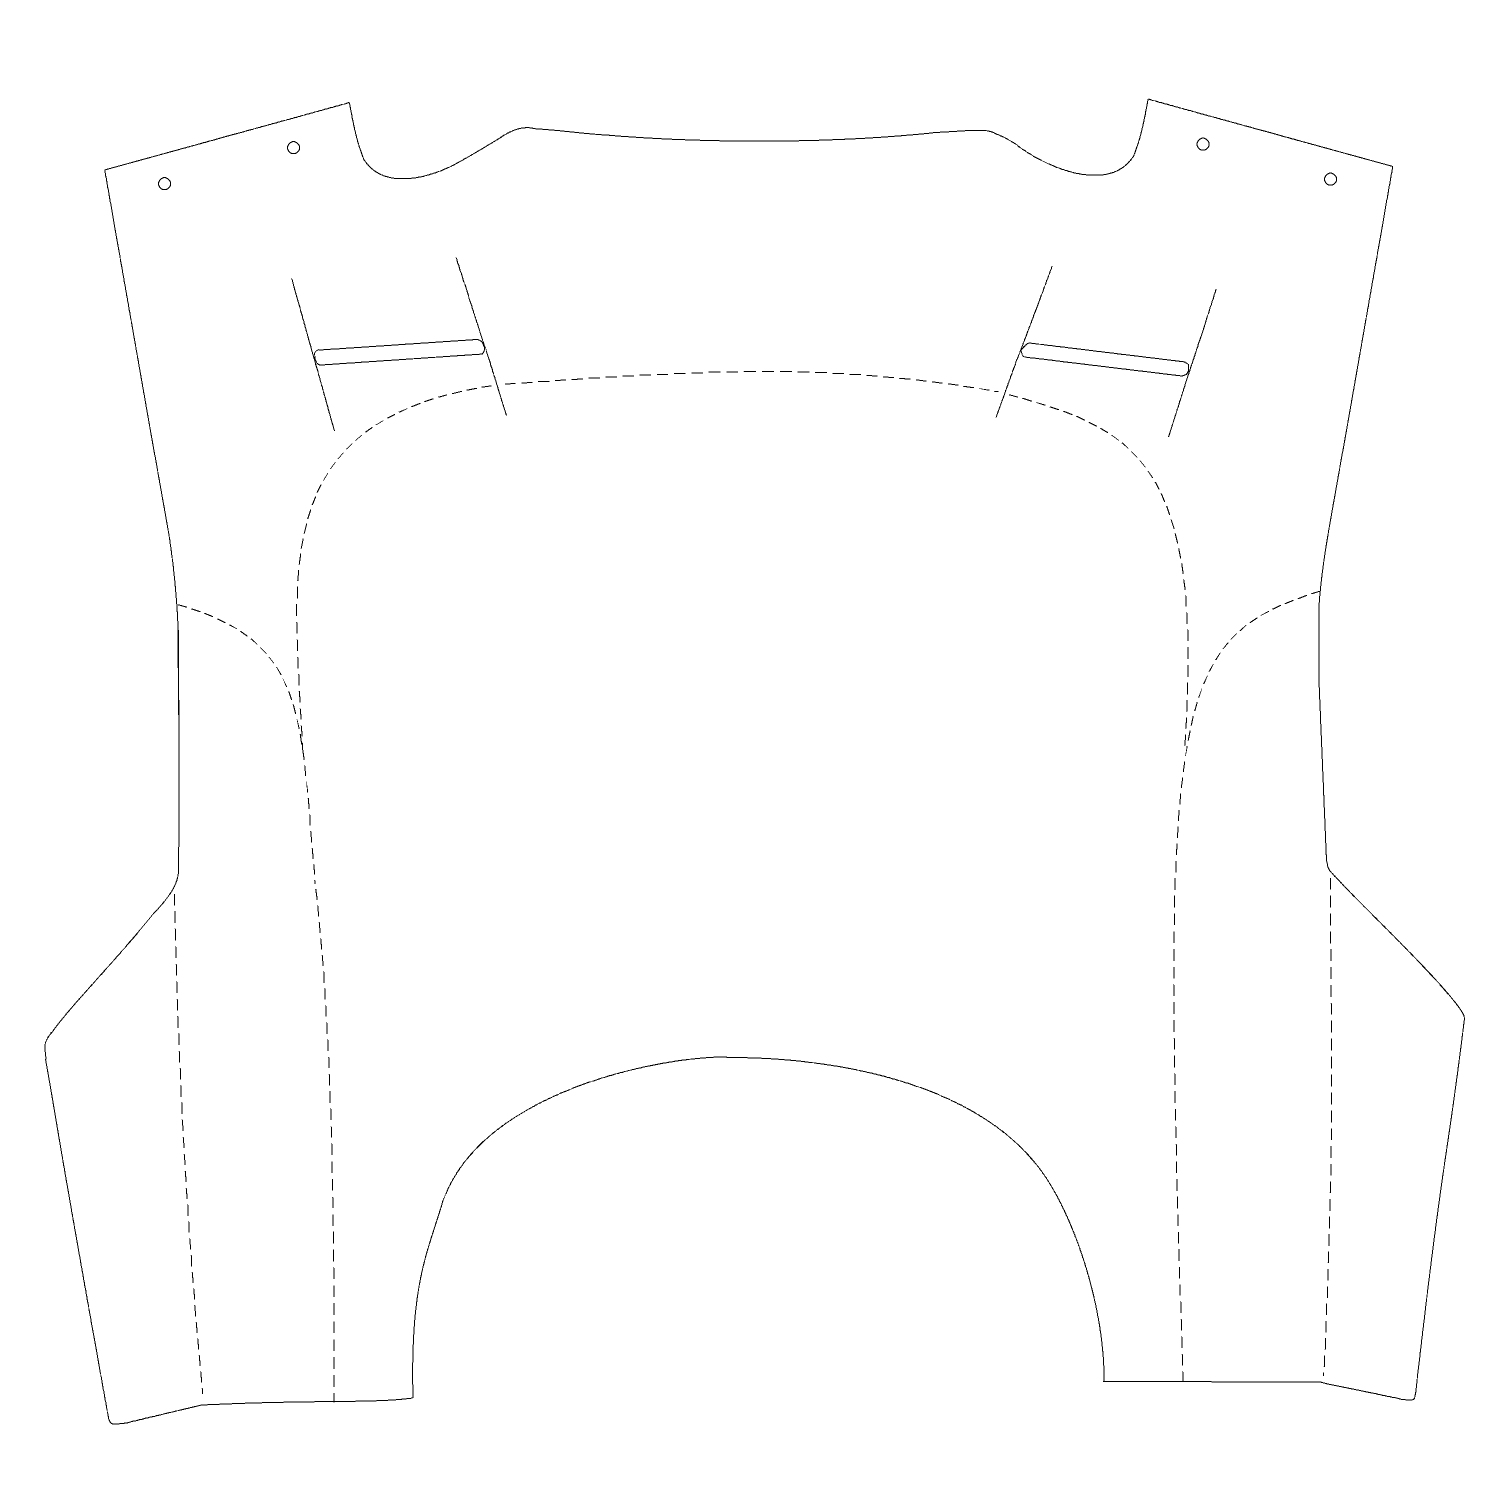 the rafal works armor rwa templates boba fett costume and prop